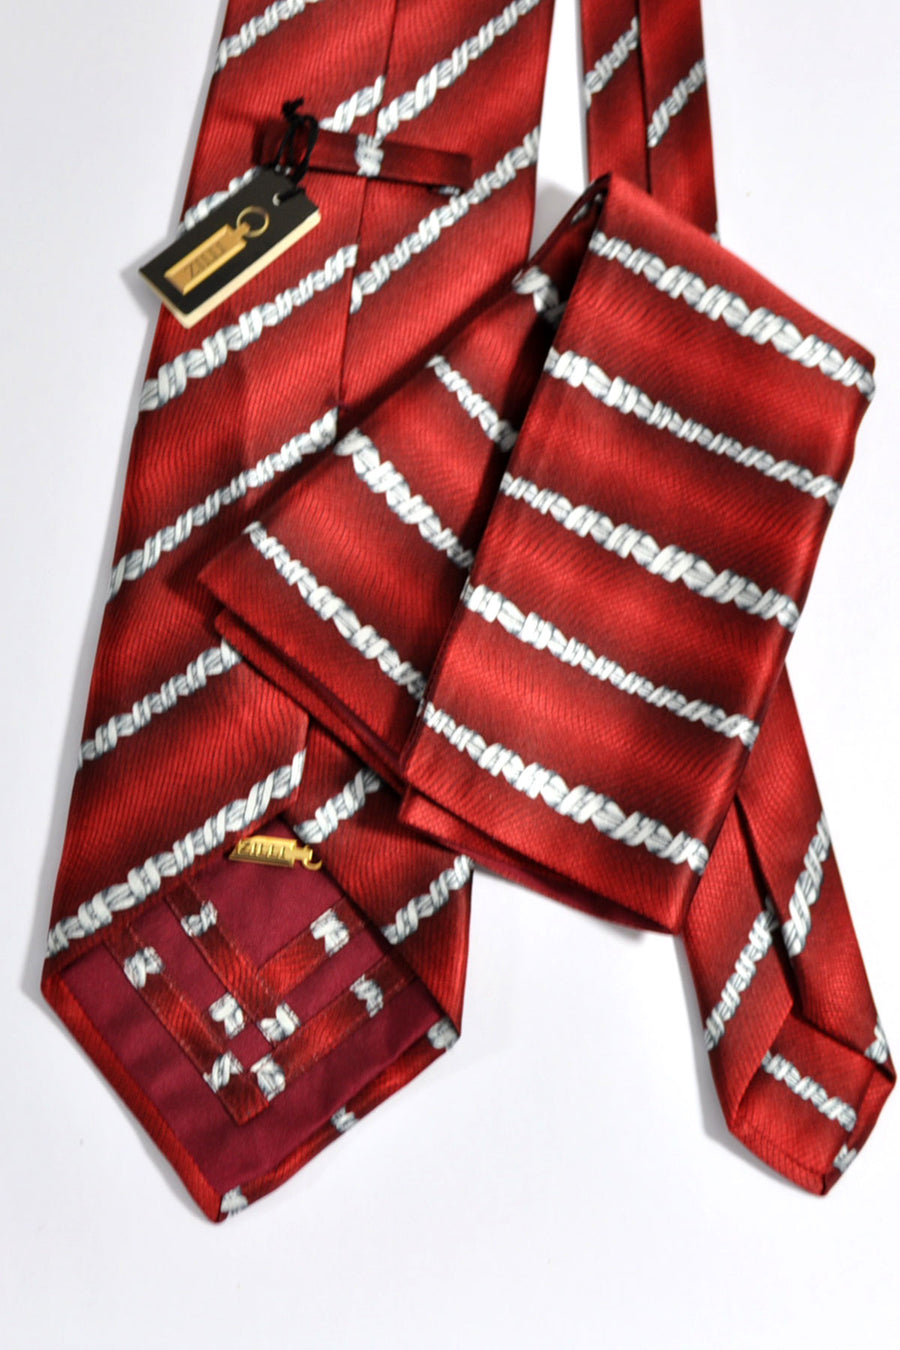 Zilli Tie & Pocket Square Set Burgundy Red Stripes FINAL SALE